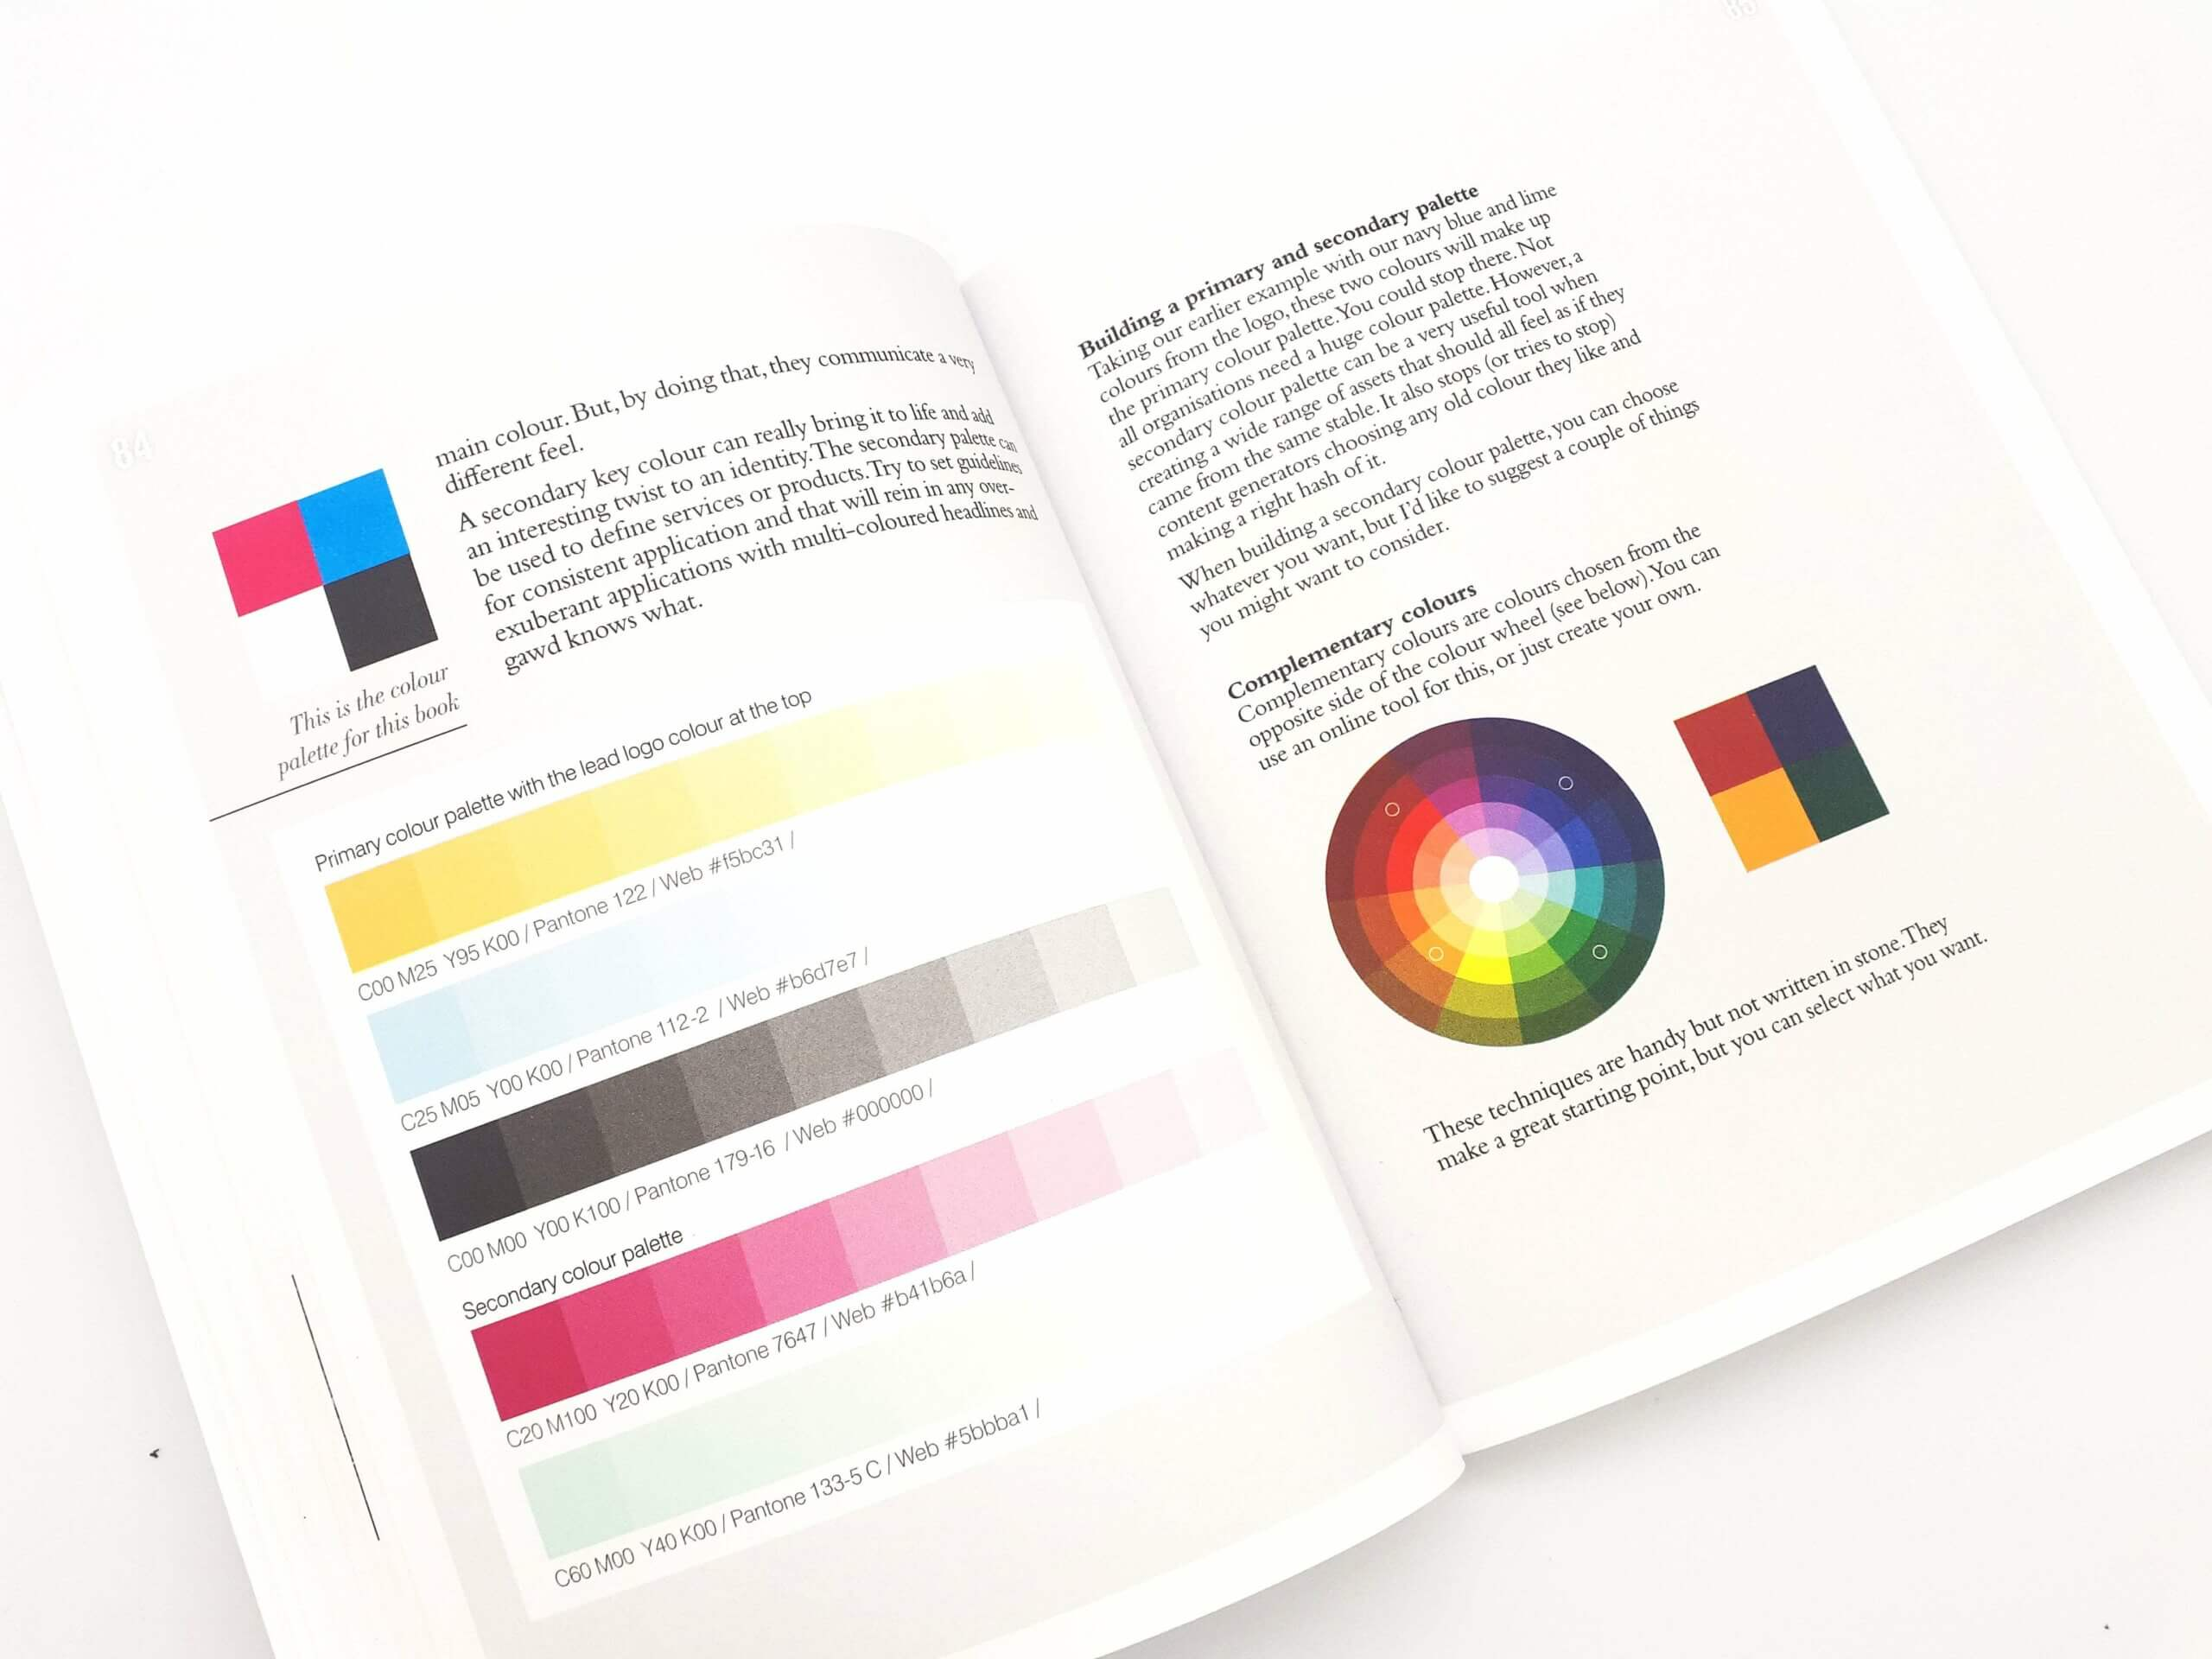 Know Your Onions - Corporate Identity By Drew de Soto - Book Review_9